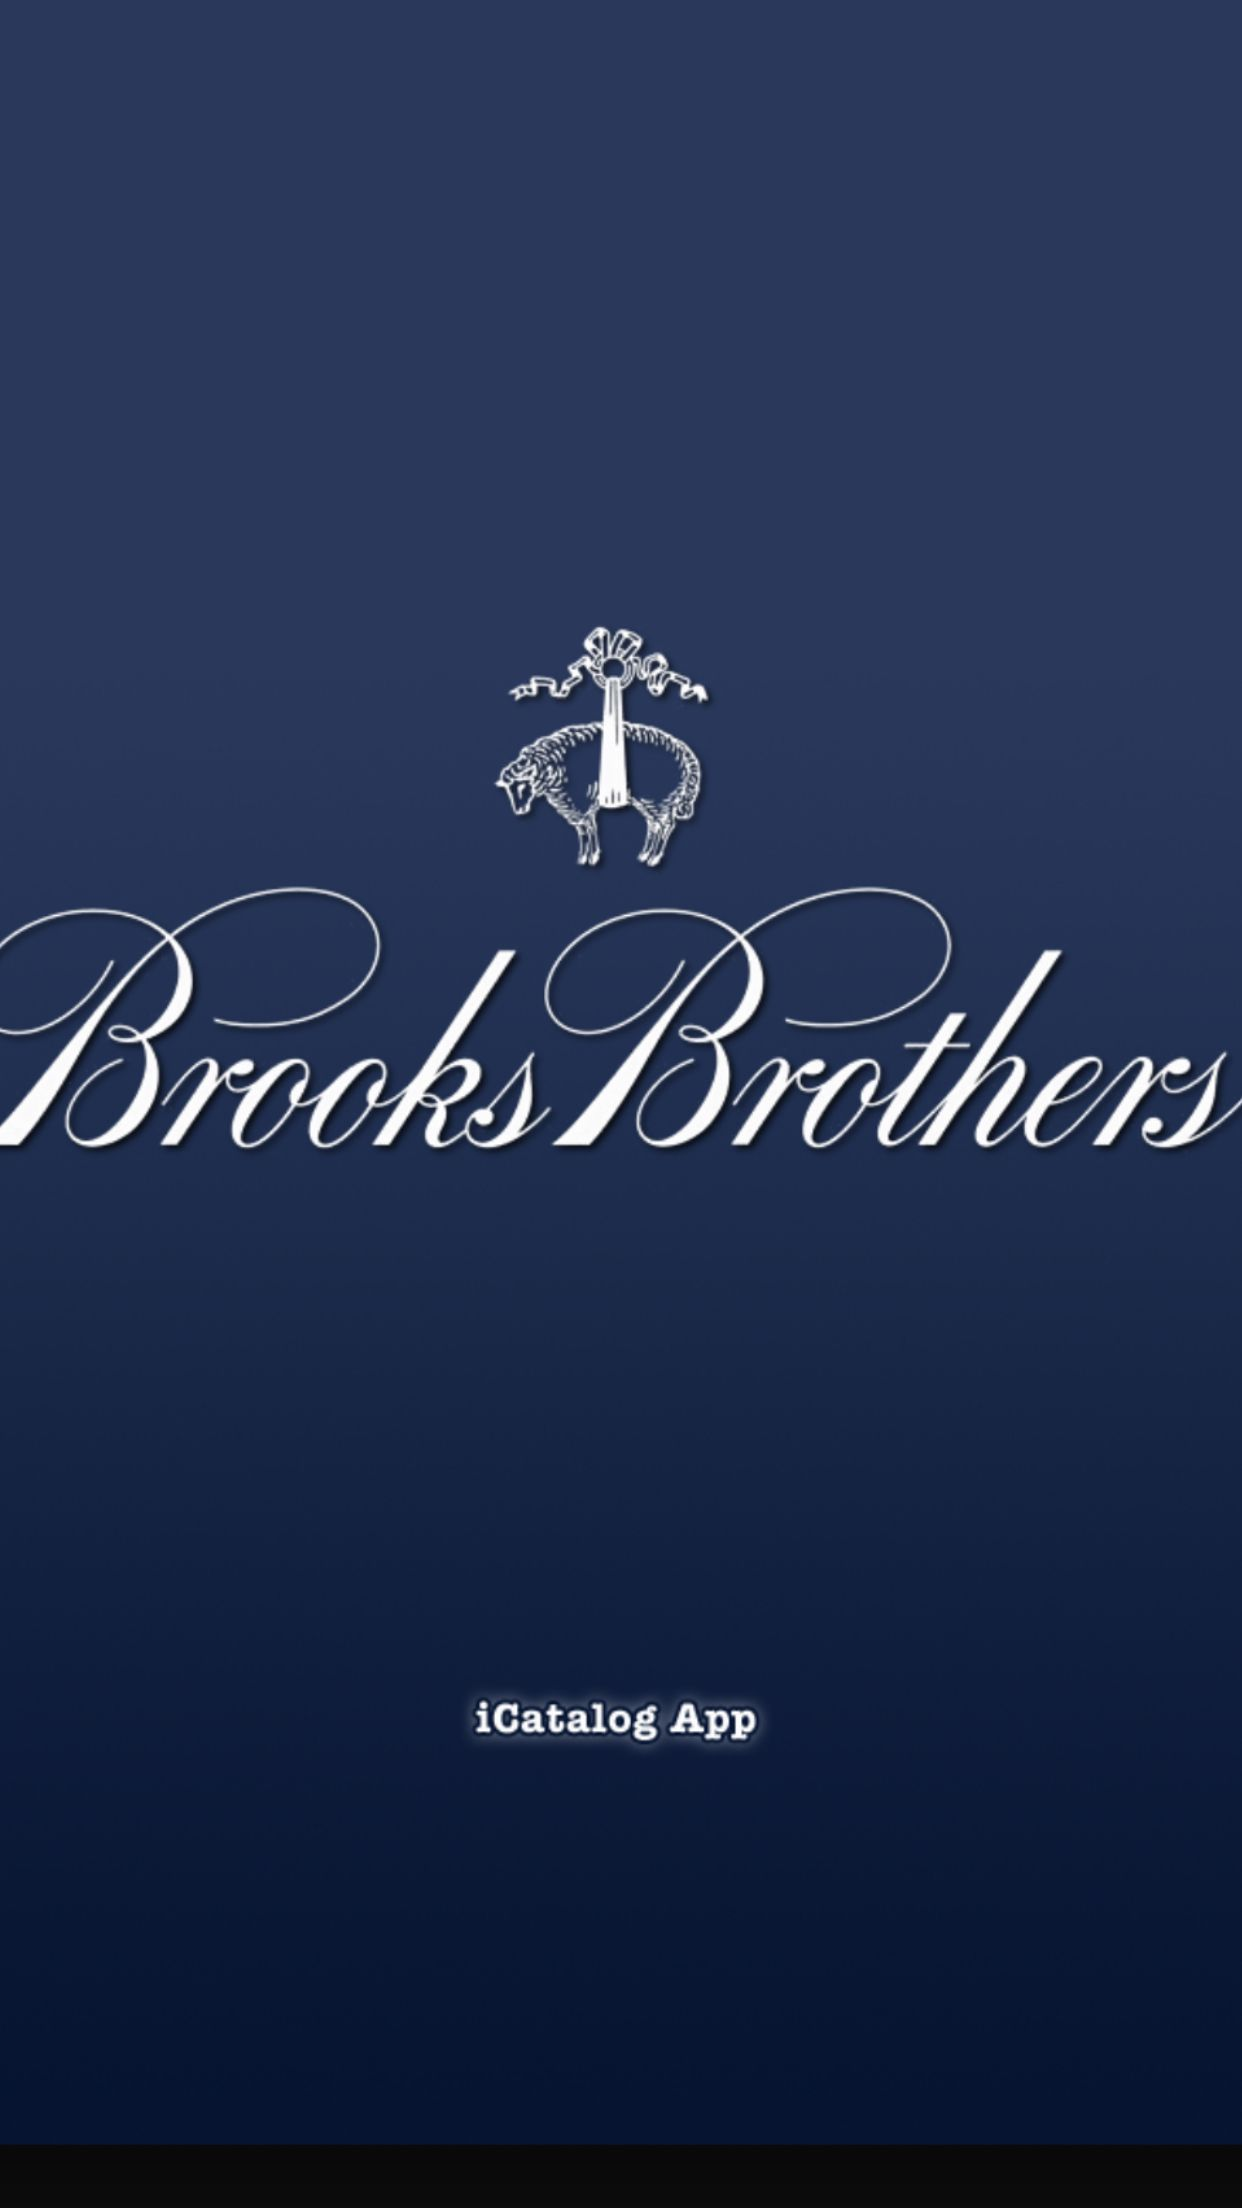 Brooks Brothers Brooks brothers, Children images, Good